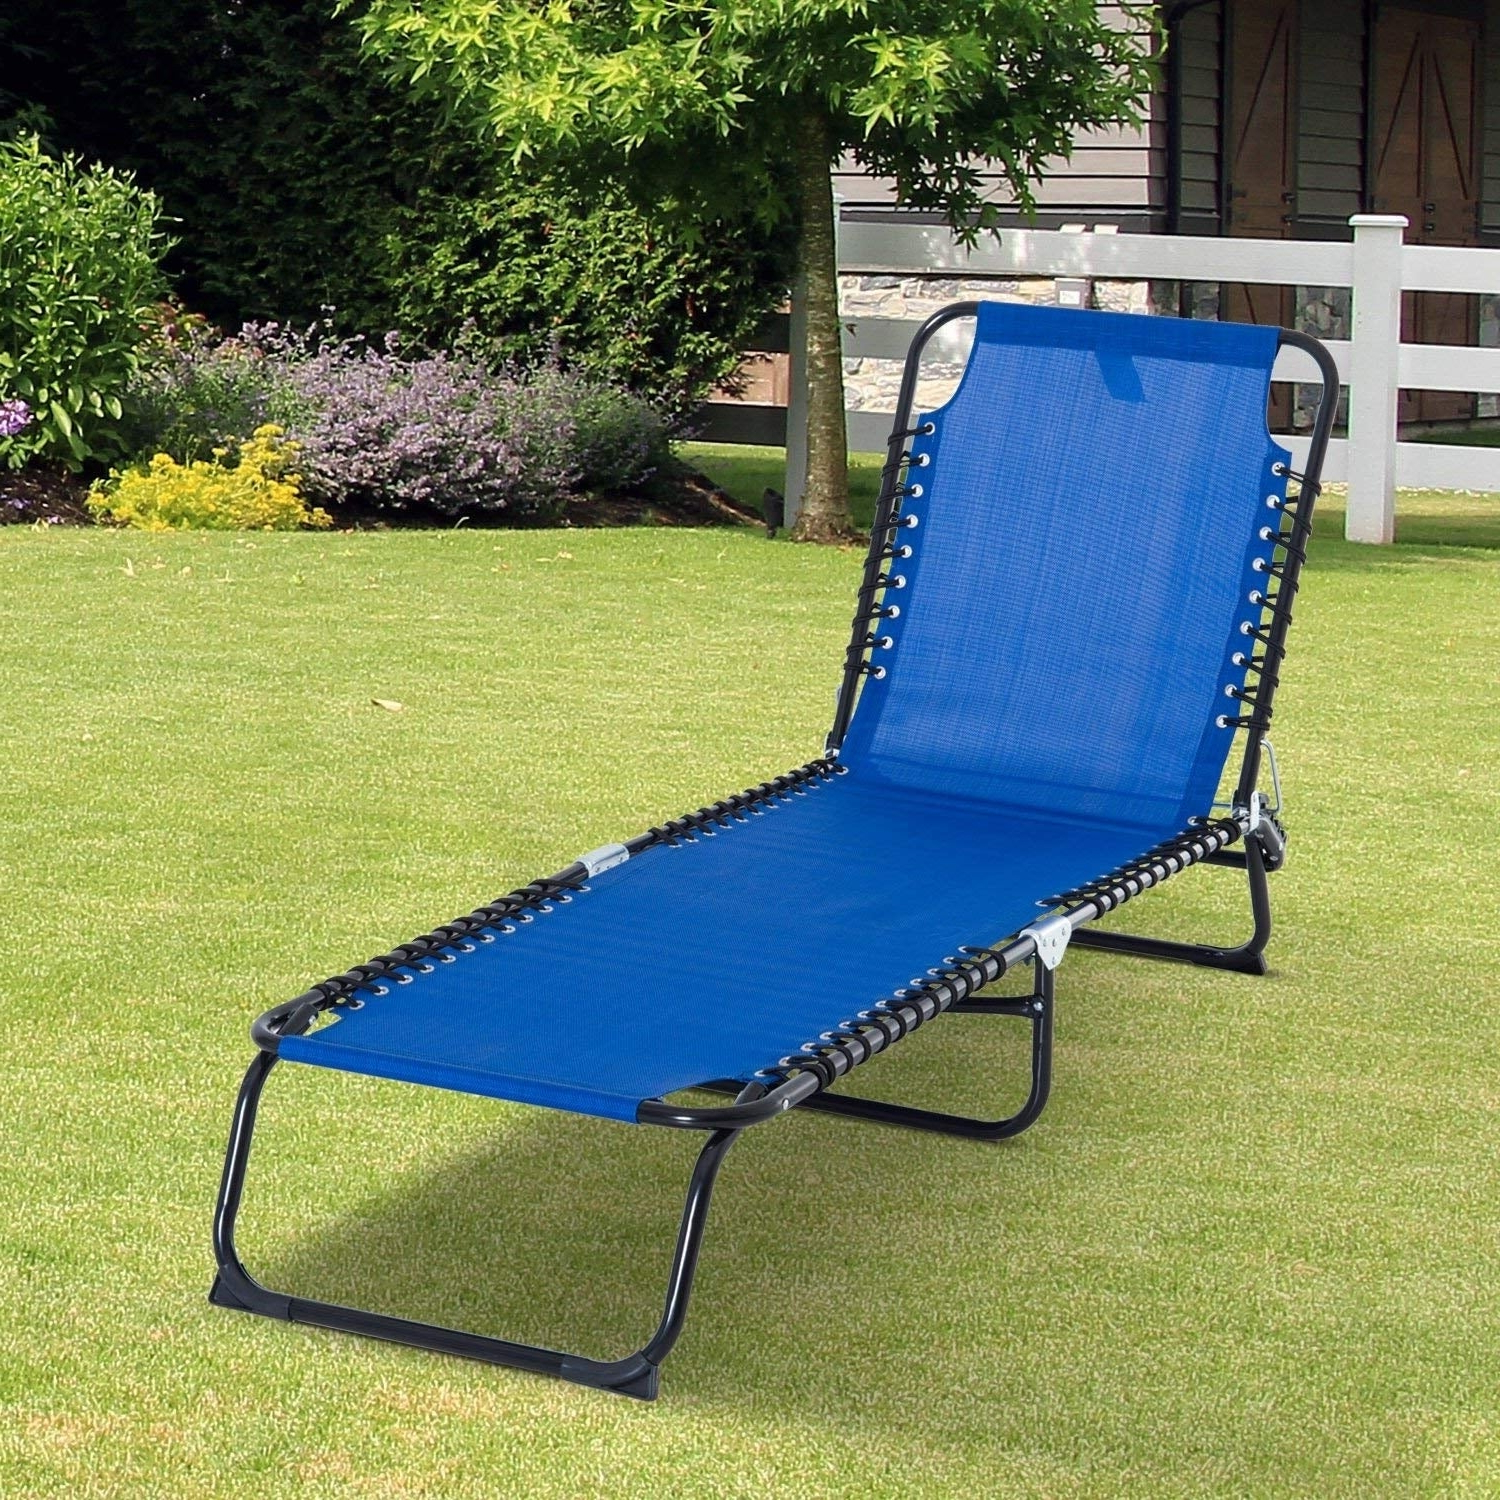 Portable Reclining Beach Chaise Lounge Folding Chairs With Preferred Outsunny 3 Position Portable Reclining Beach Chaise Lounge Folding Chair Outdoor Patio – Light Blue (View 9 of 25)